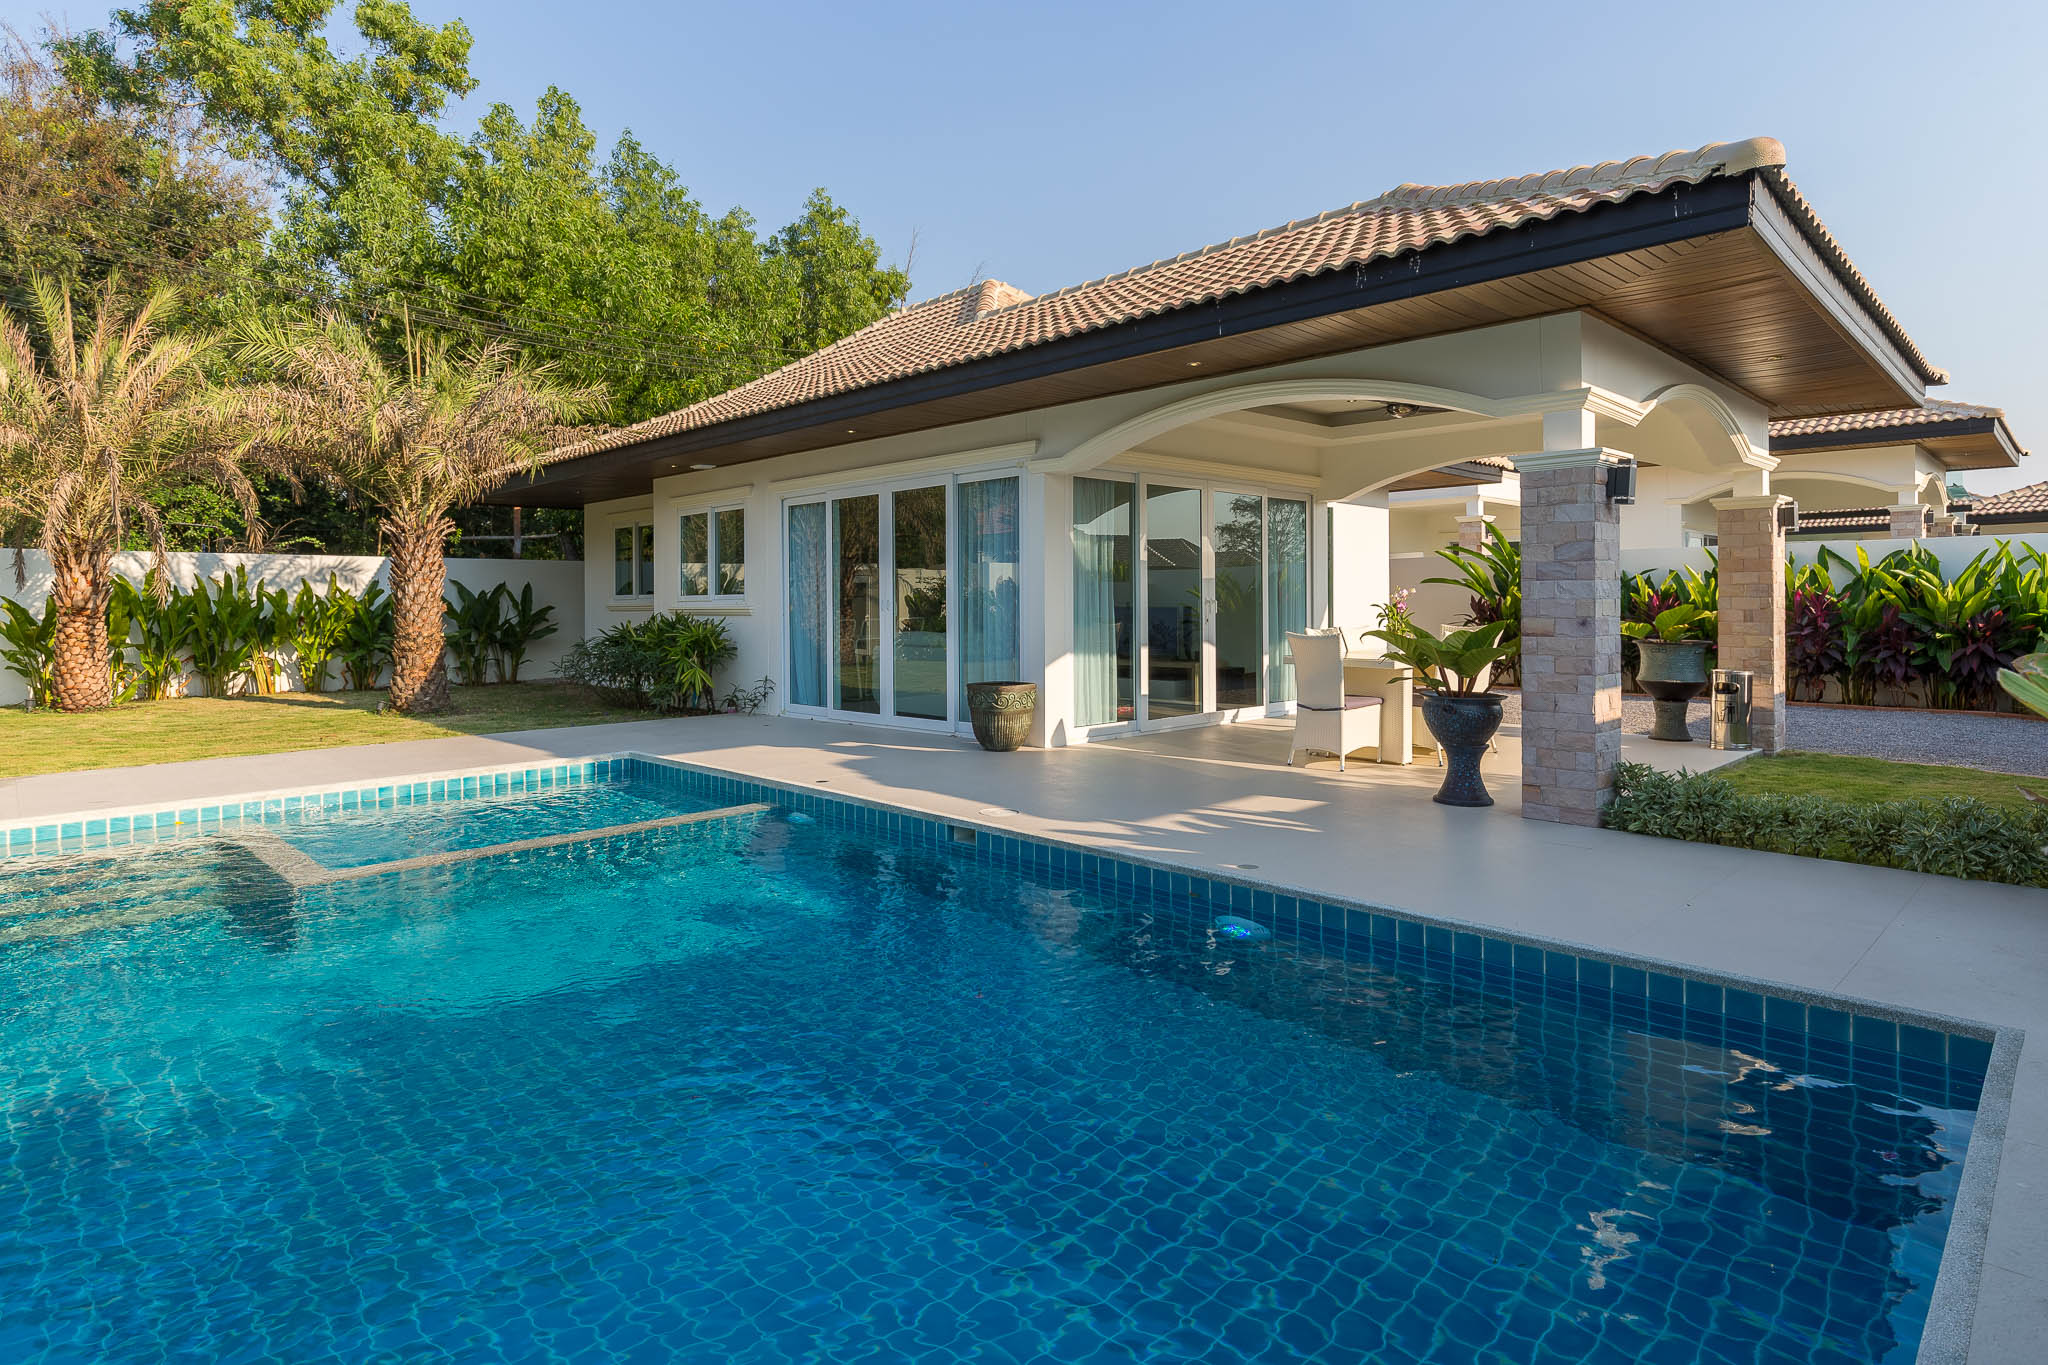 Orchid Paradise Homes, price 4390000 baht, 2 bedrooms